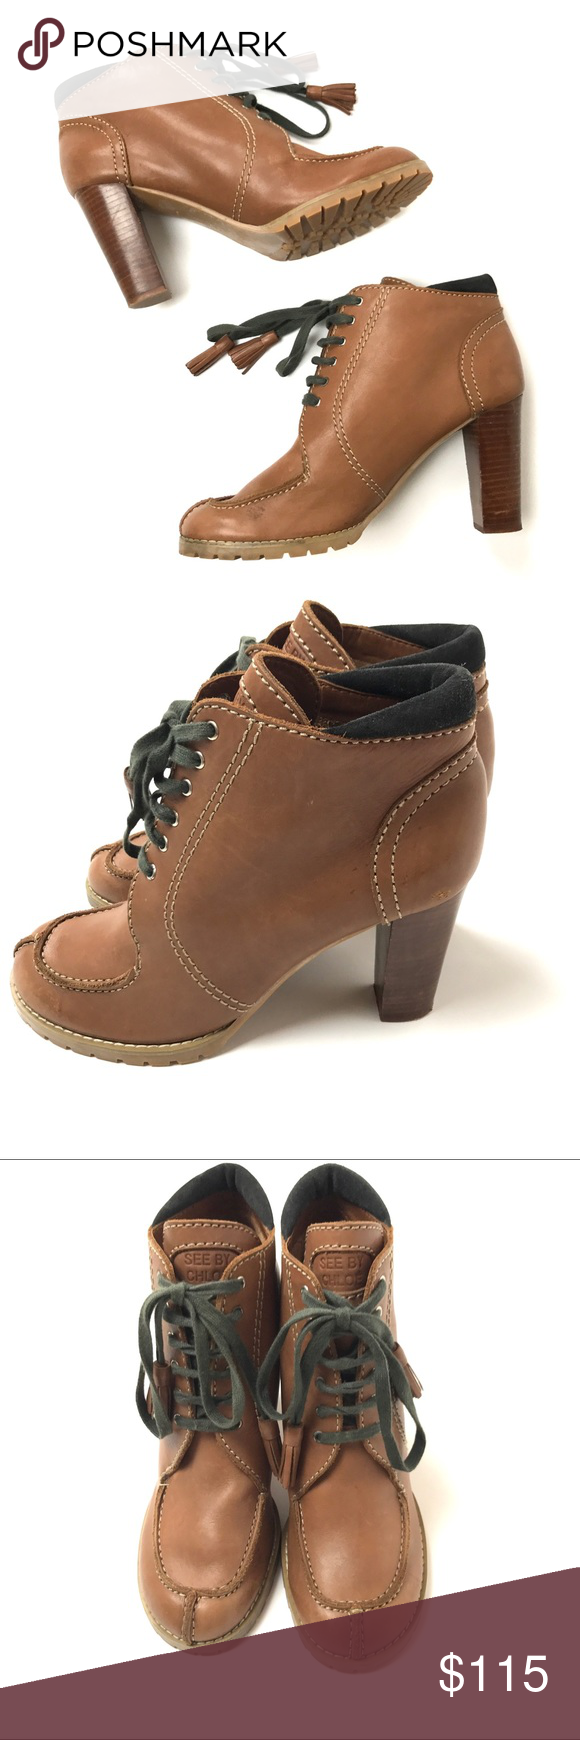 "See by Chloe Brown Lace Up Ankle Boots Size 10 See by Chloe Brown Lace Up Ankle Boots Size 41/11  Heel is 4""  Condition: Excellent pre-owned condition. Chloe Shoes Heeled Boots"